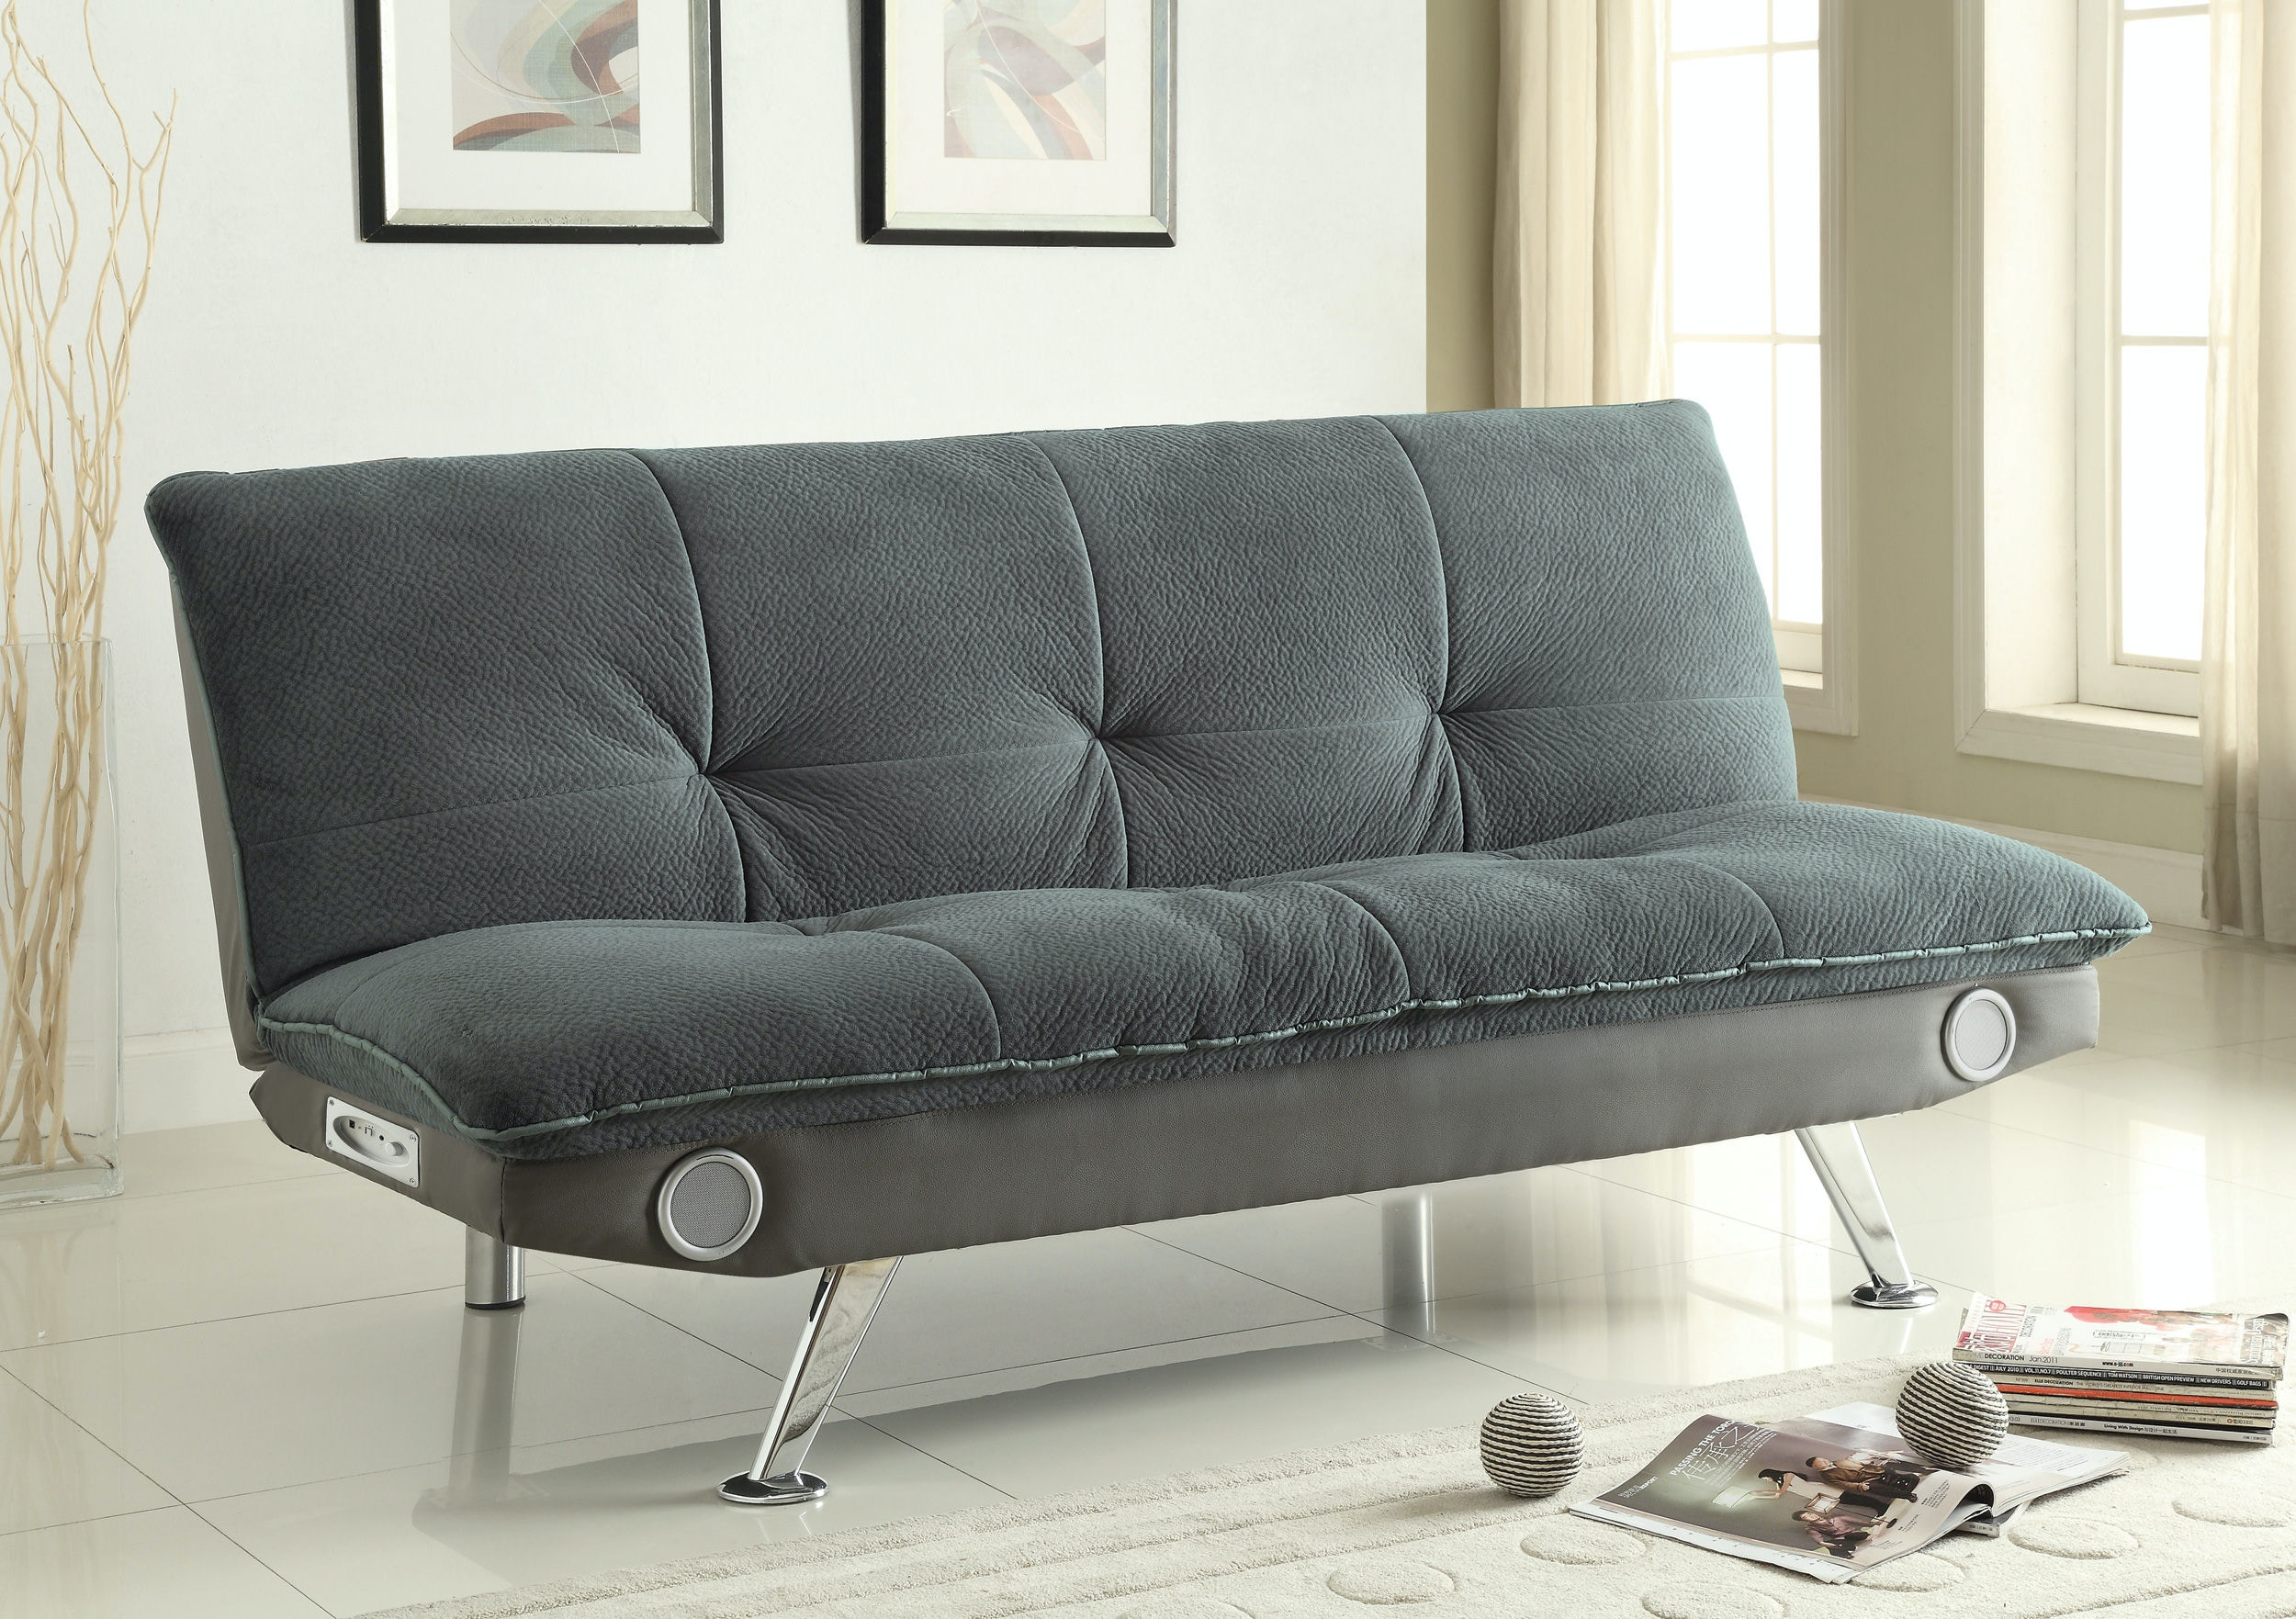 Coaster Living Room Sofa Bed 500046   Winner Furniture   Louisville,  Owensboro And Radcliff, KY